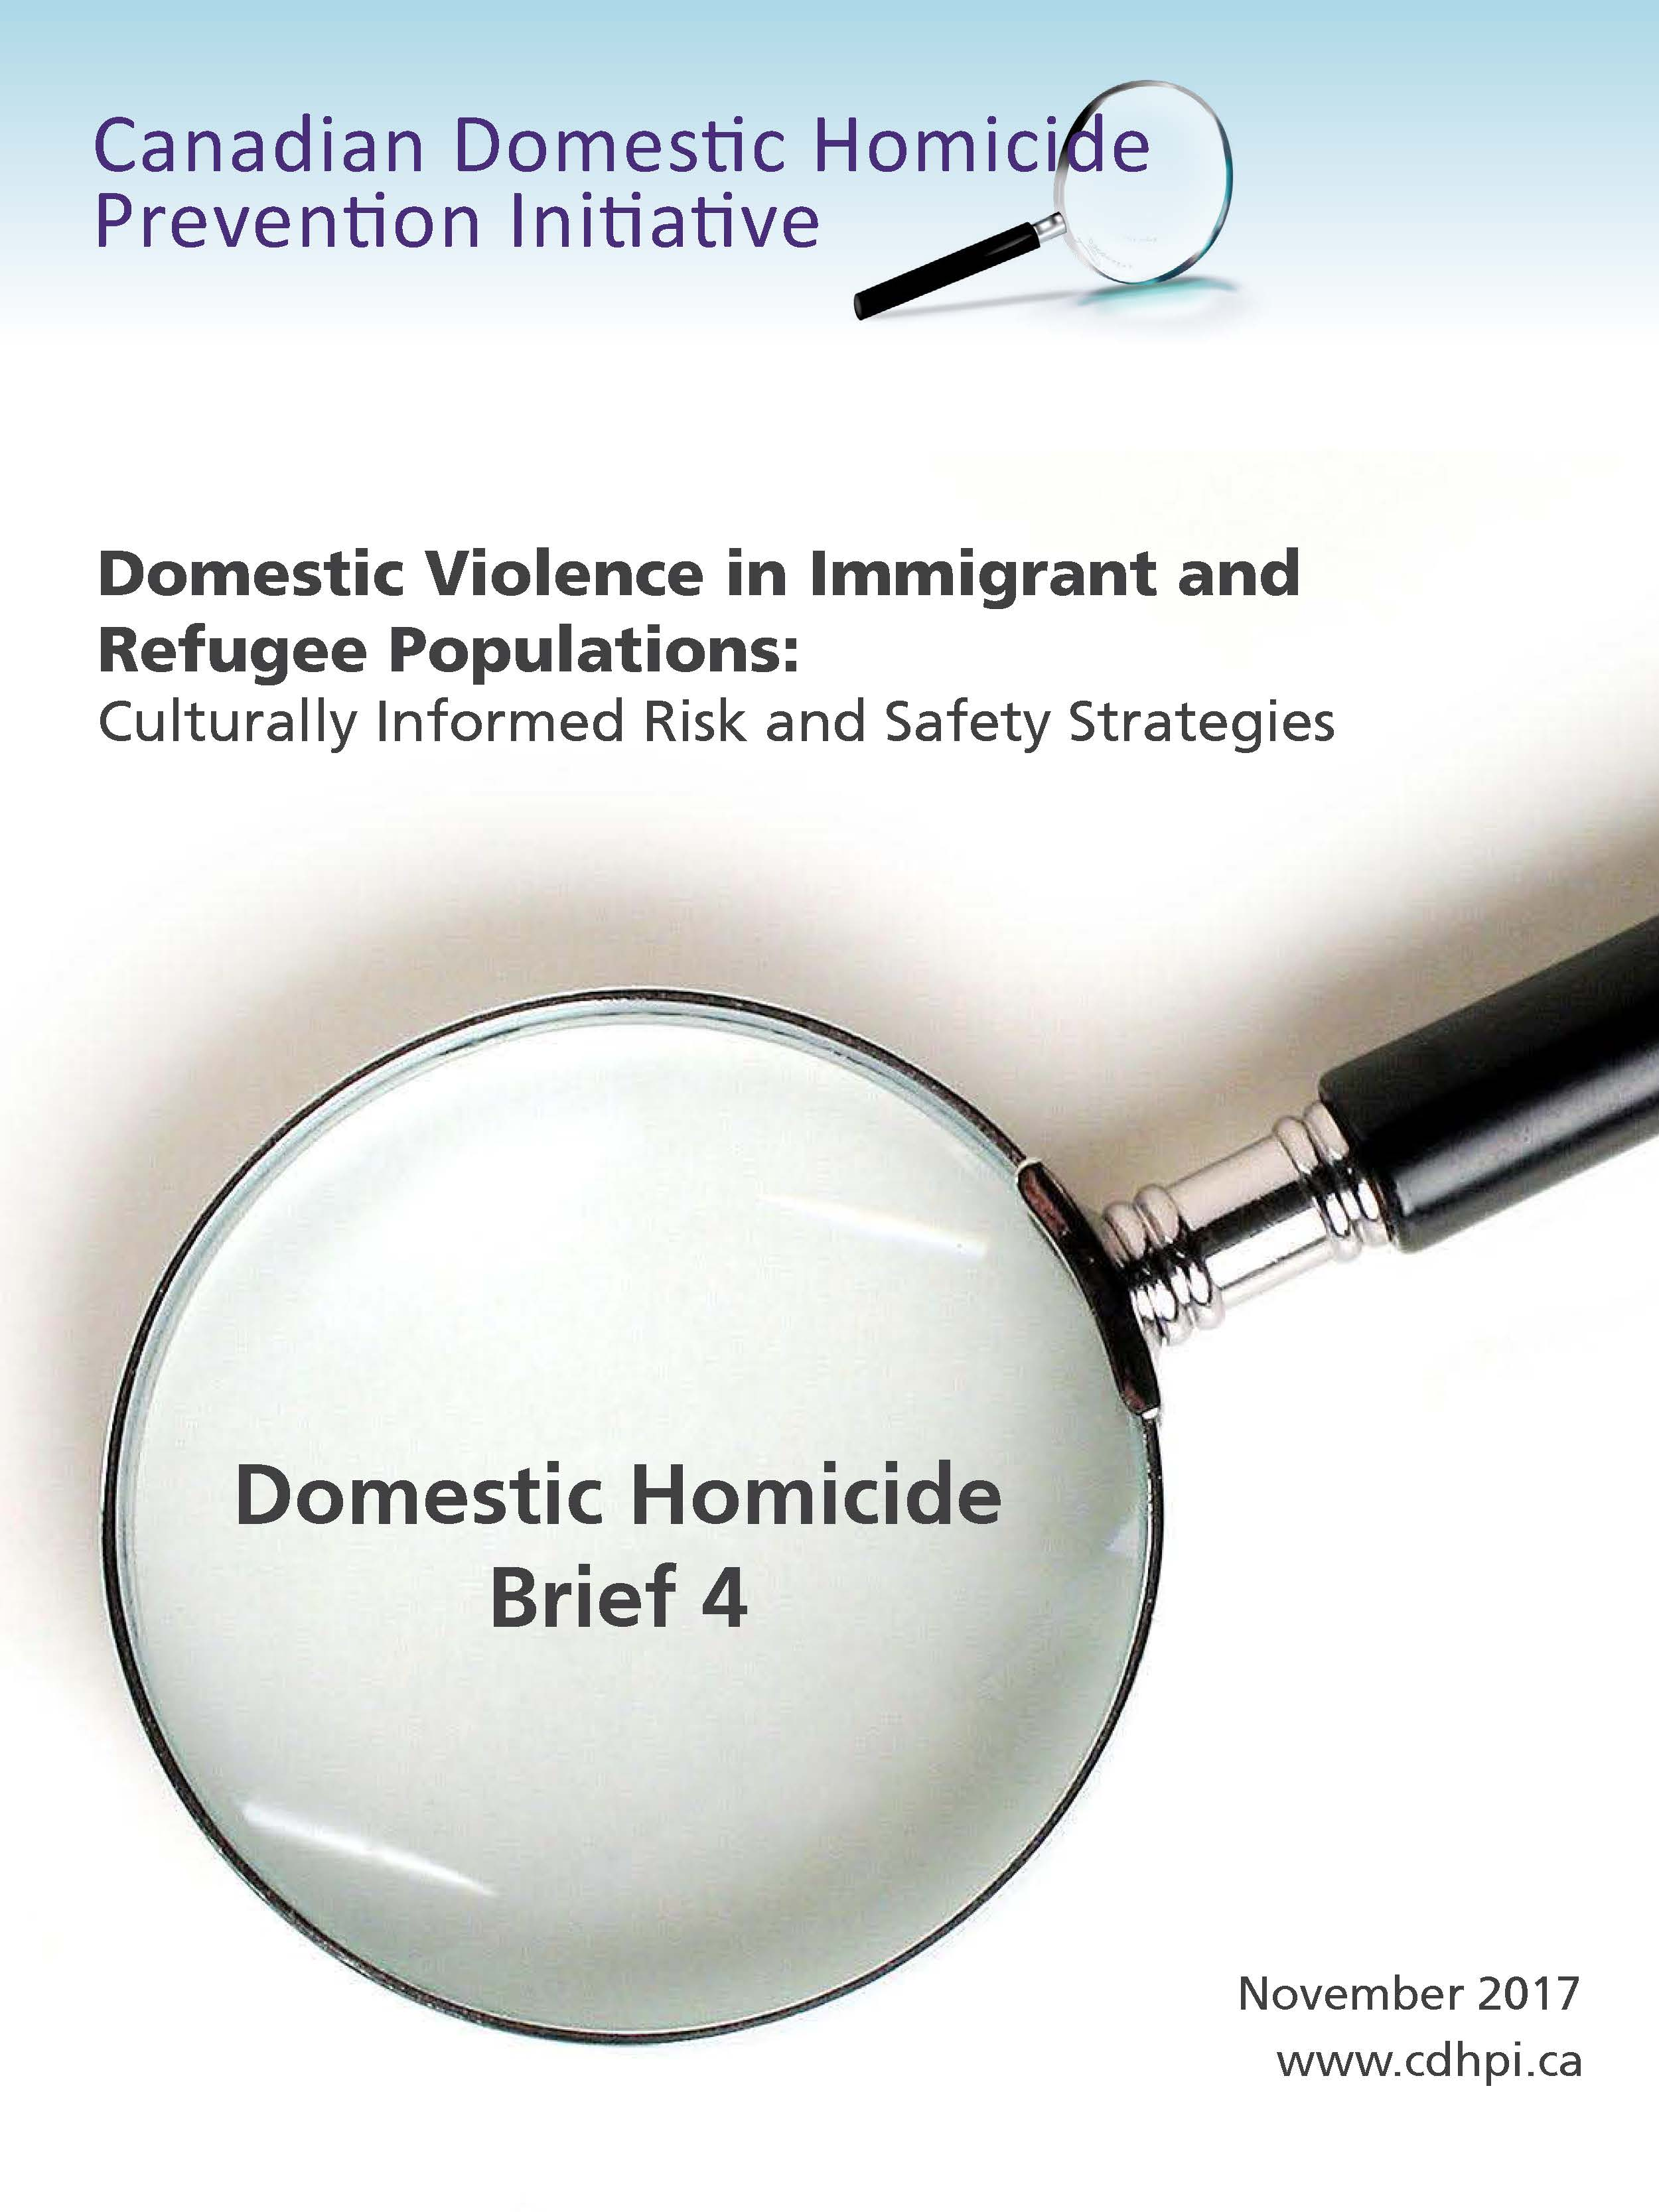 Brief 4: Domestic Violence in Immigrant and Refugee Populations - Culturally-Informed Risk and Safety Strategies cover page